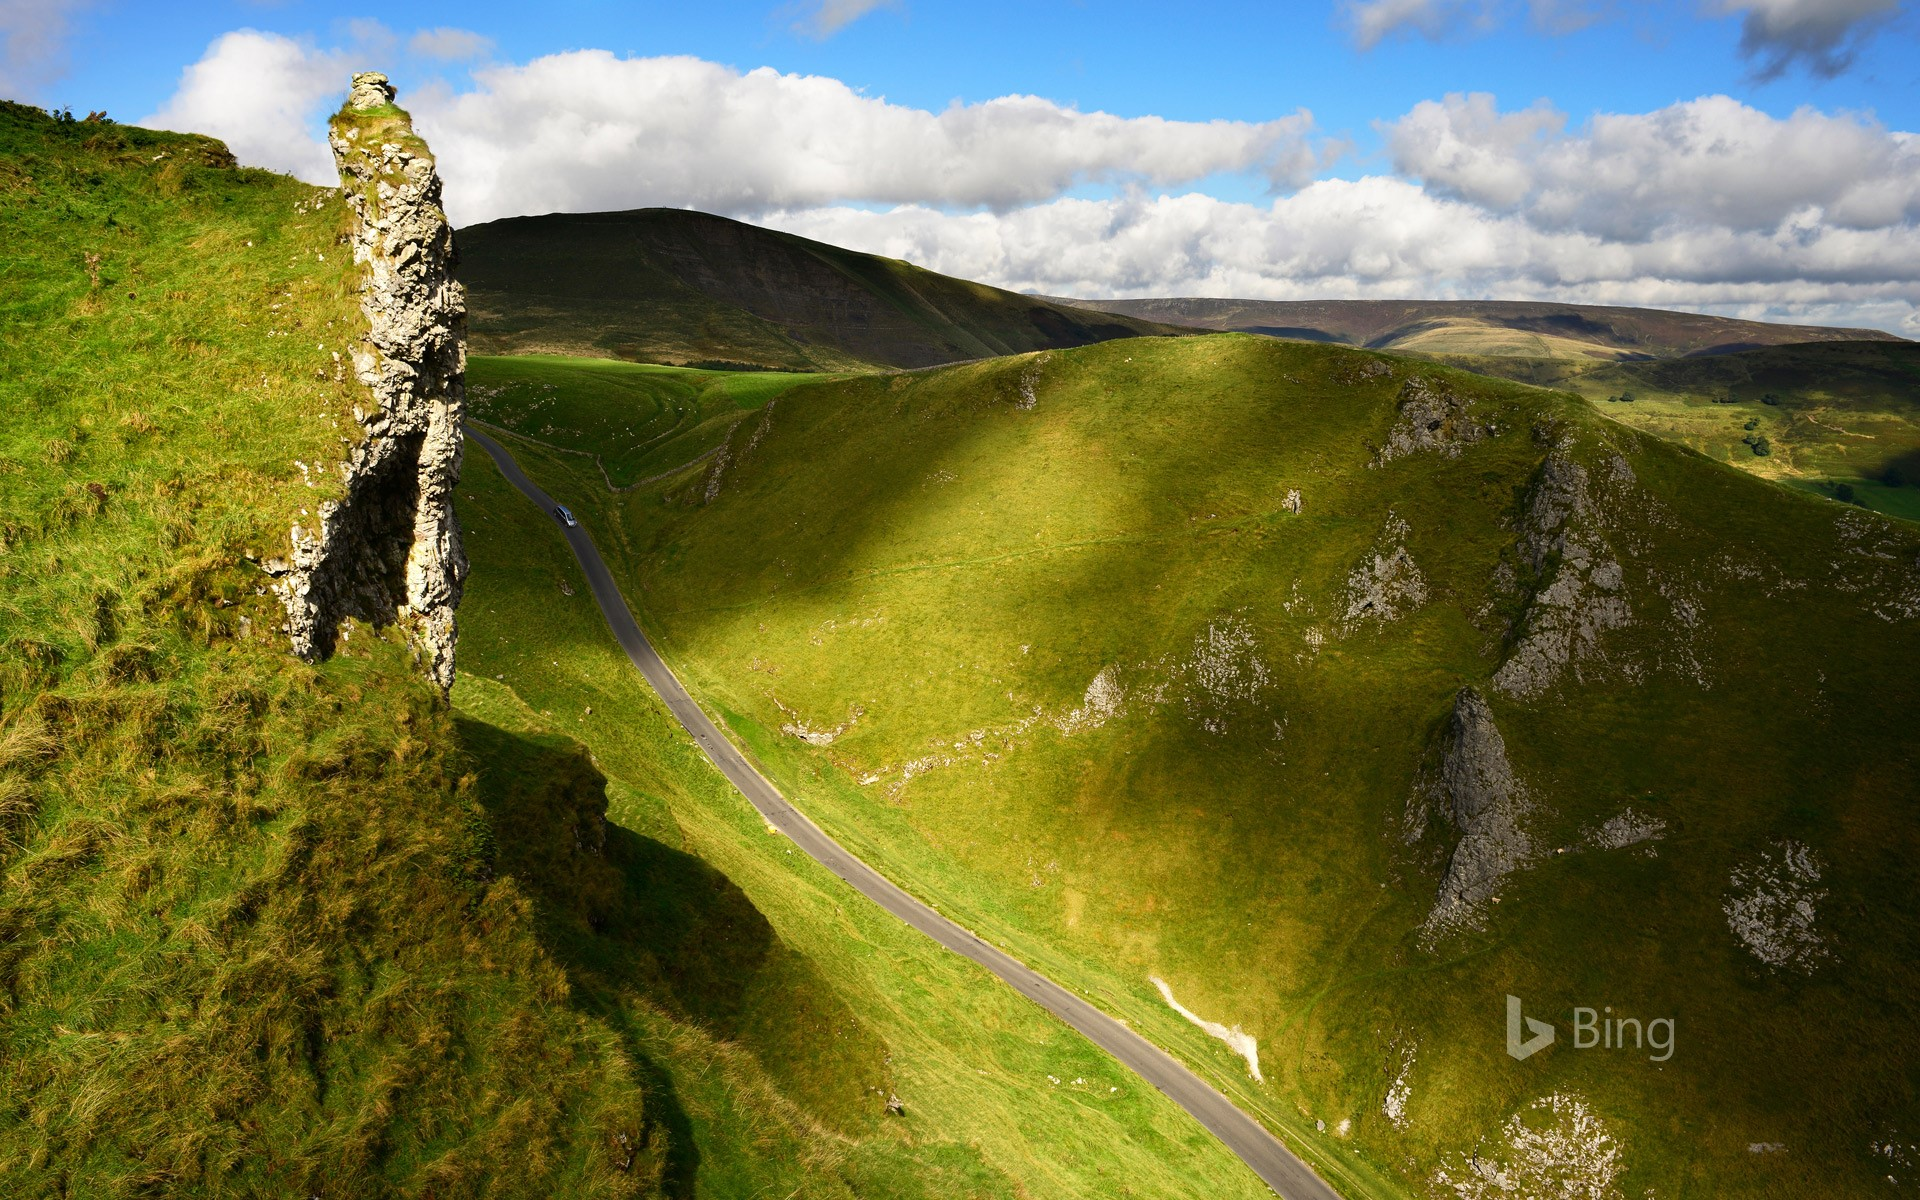 Winnats Pass in the Peak District of Derbyshire, England